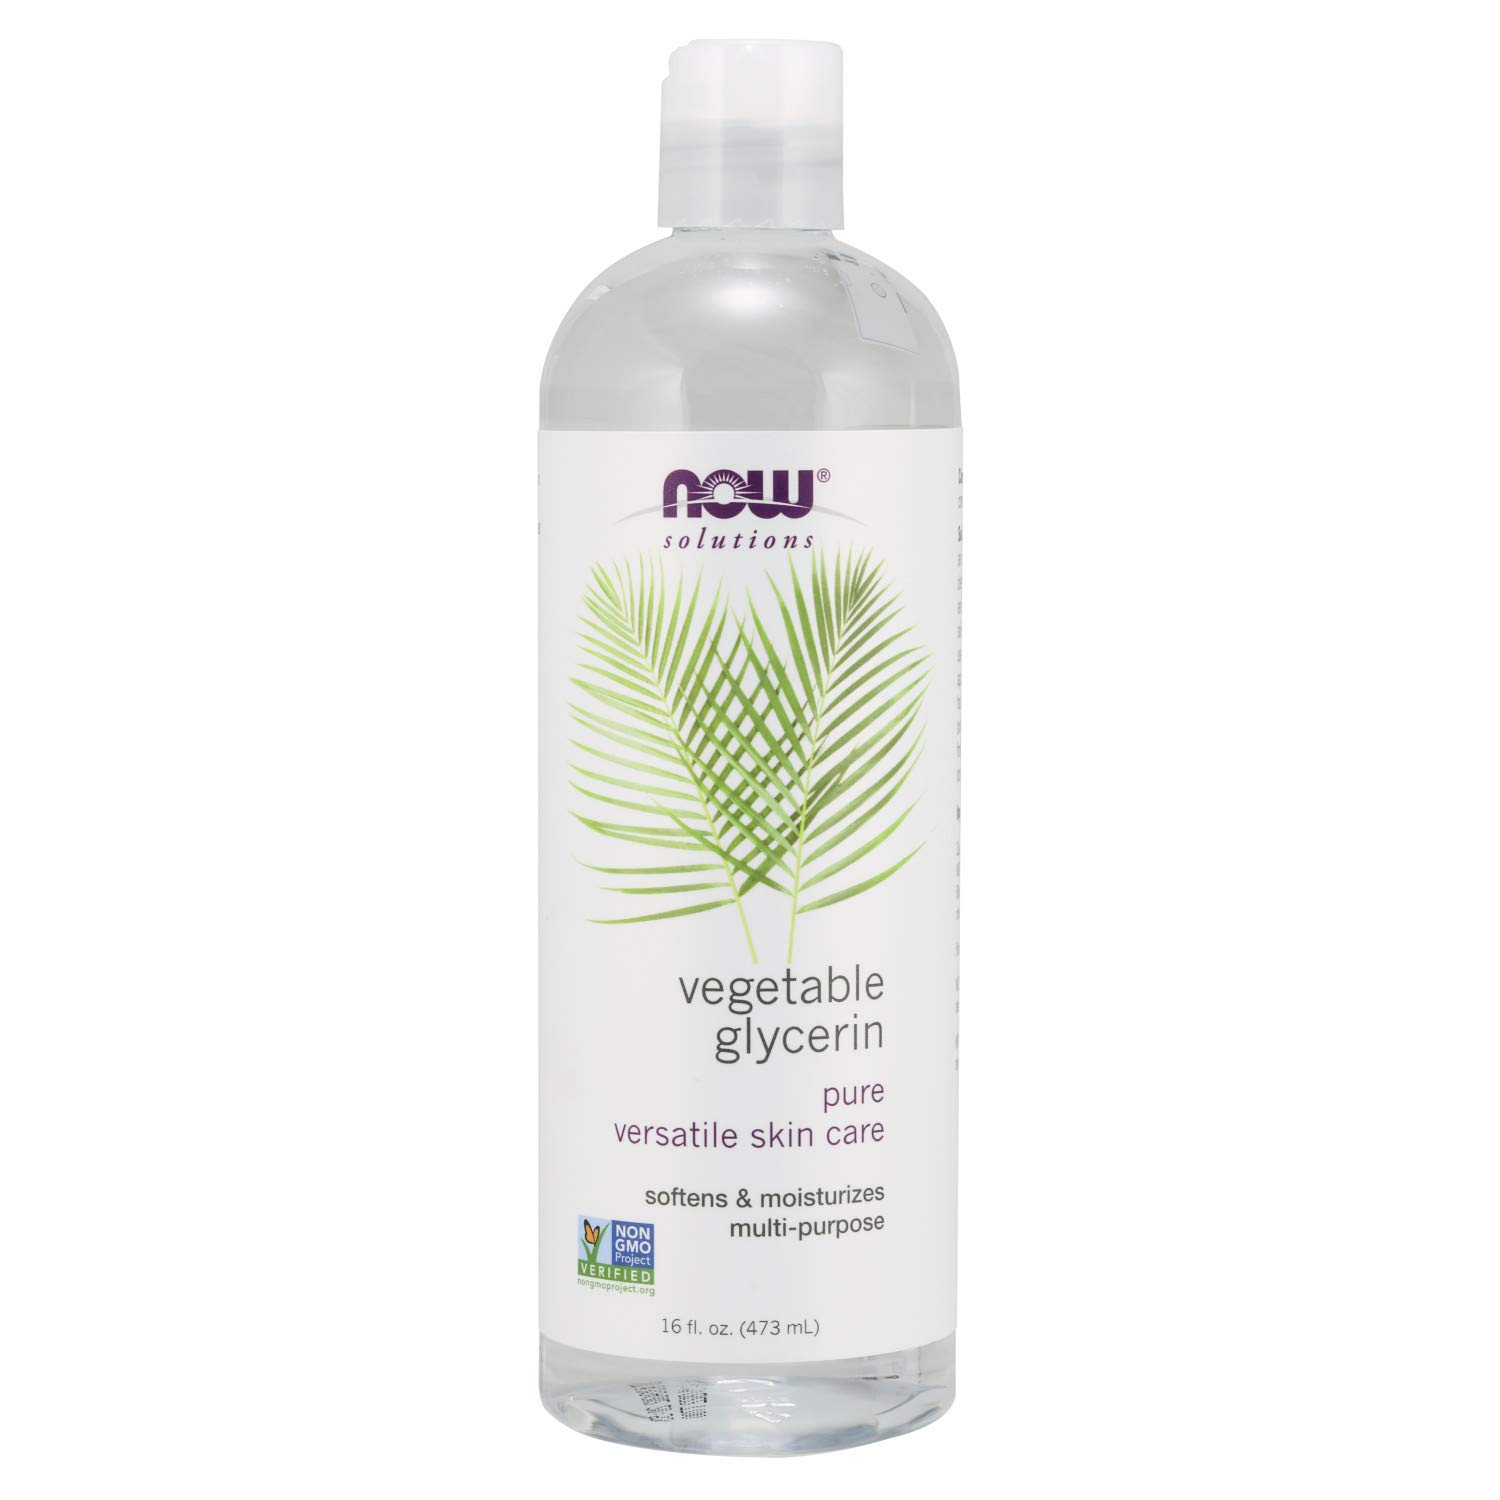 NOW Solutions, Vegetable Glycerin, 100% Pure, Versatile Skin Care, Softening and Moisturizing, 16-Ounce